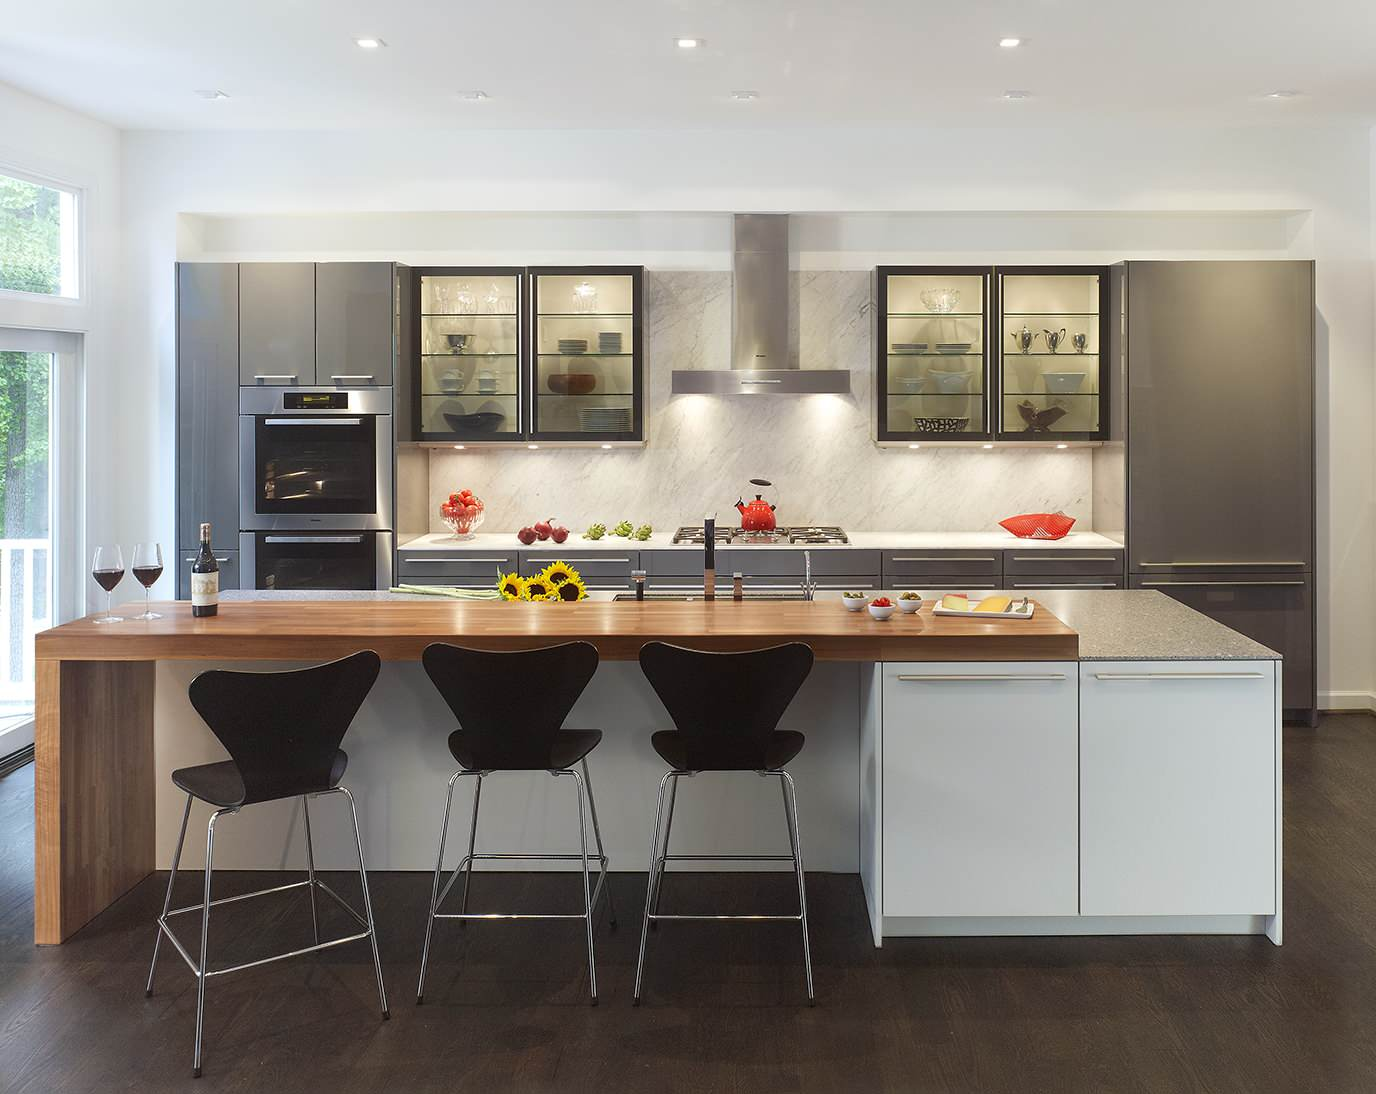 75 Beautiful Galley Kitchen With Glass Front Cabinets Pictures Ideas March 2021 Houzz